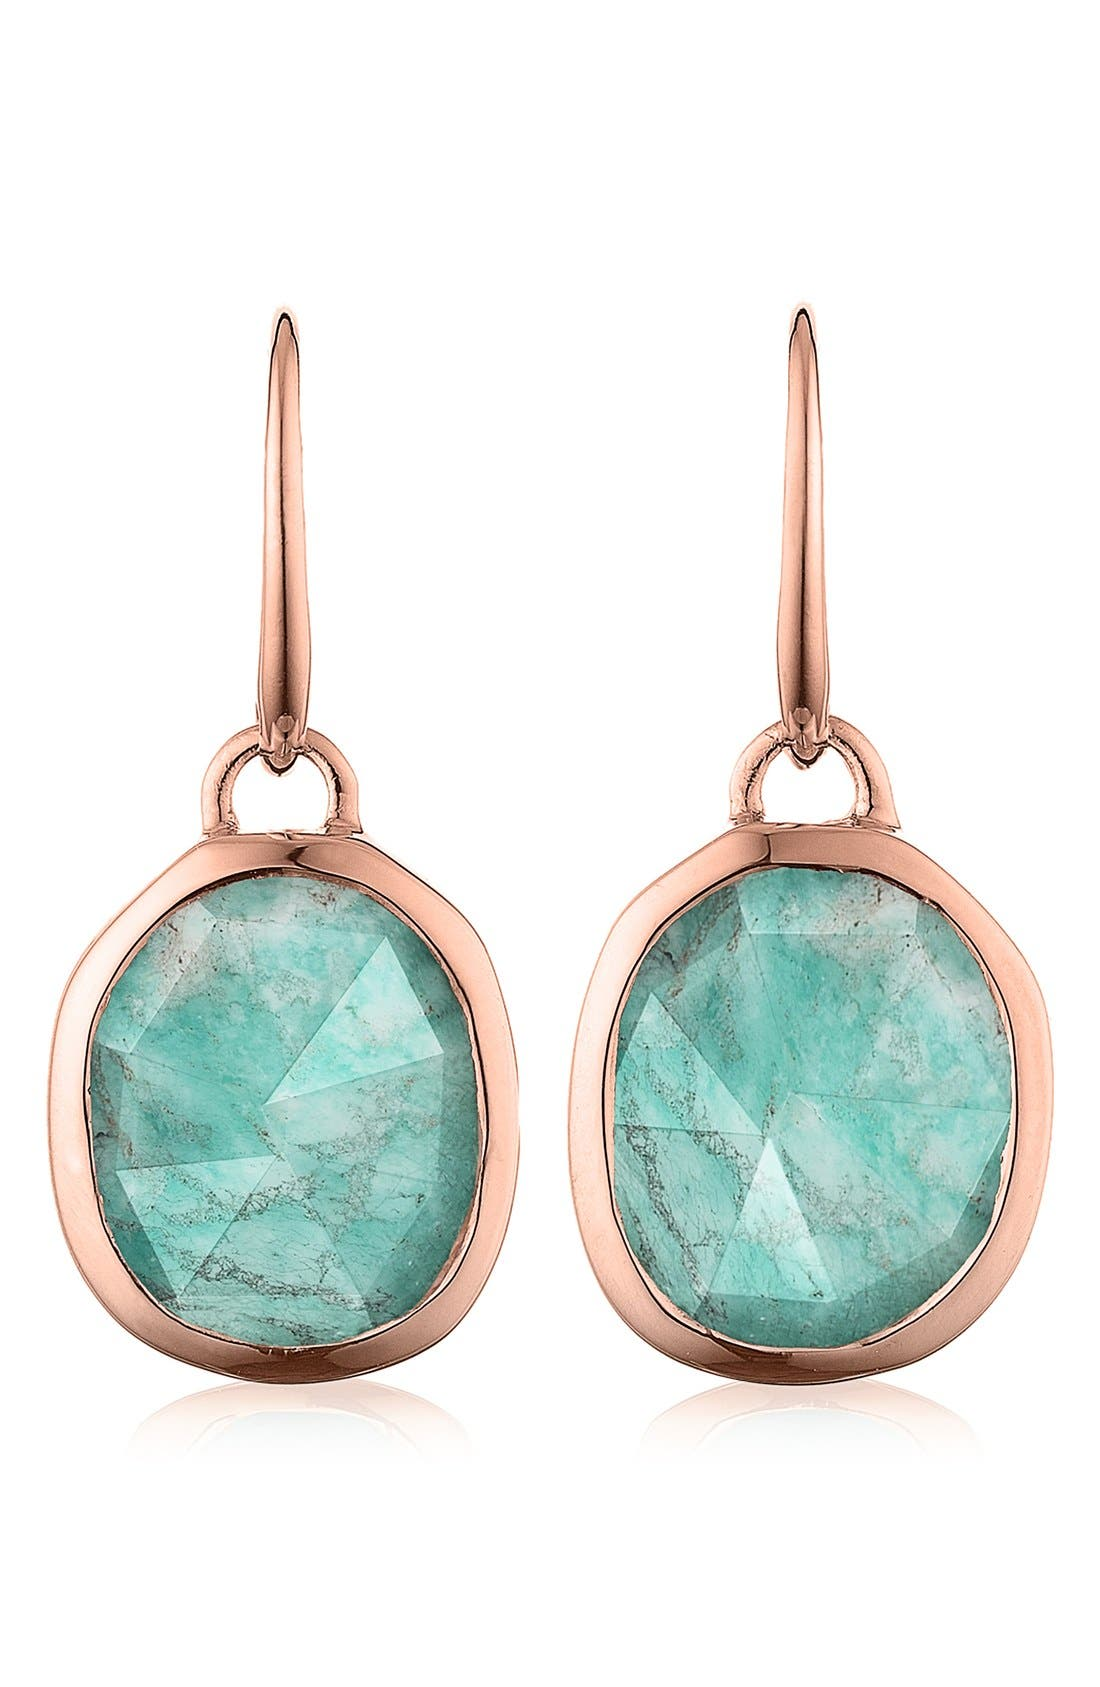 Siren Semiprecious Stone Drop Earrings,                             Main thumbnail 1, color,                             AMAZONITE/ ROSE GOLD